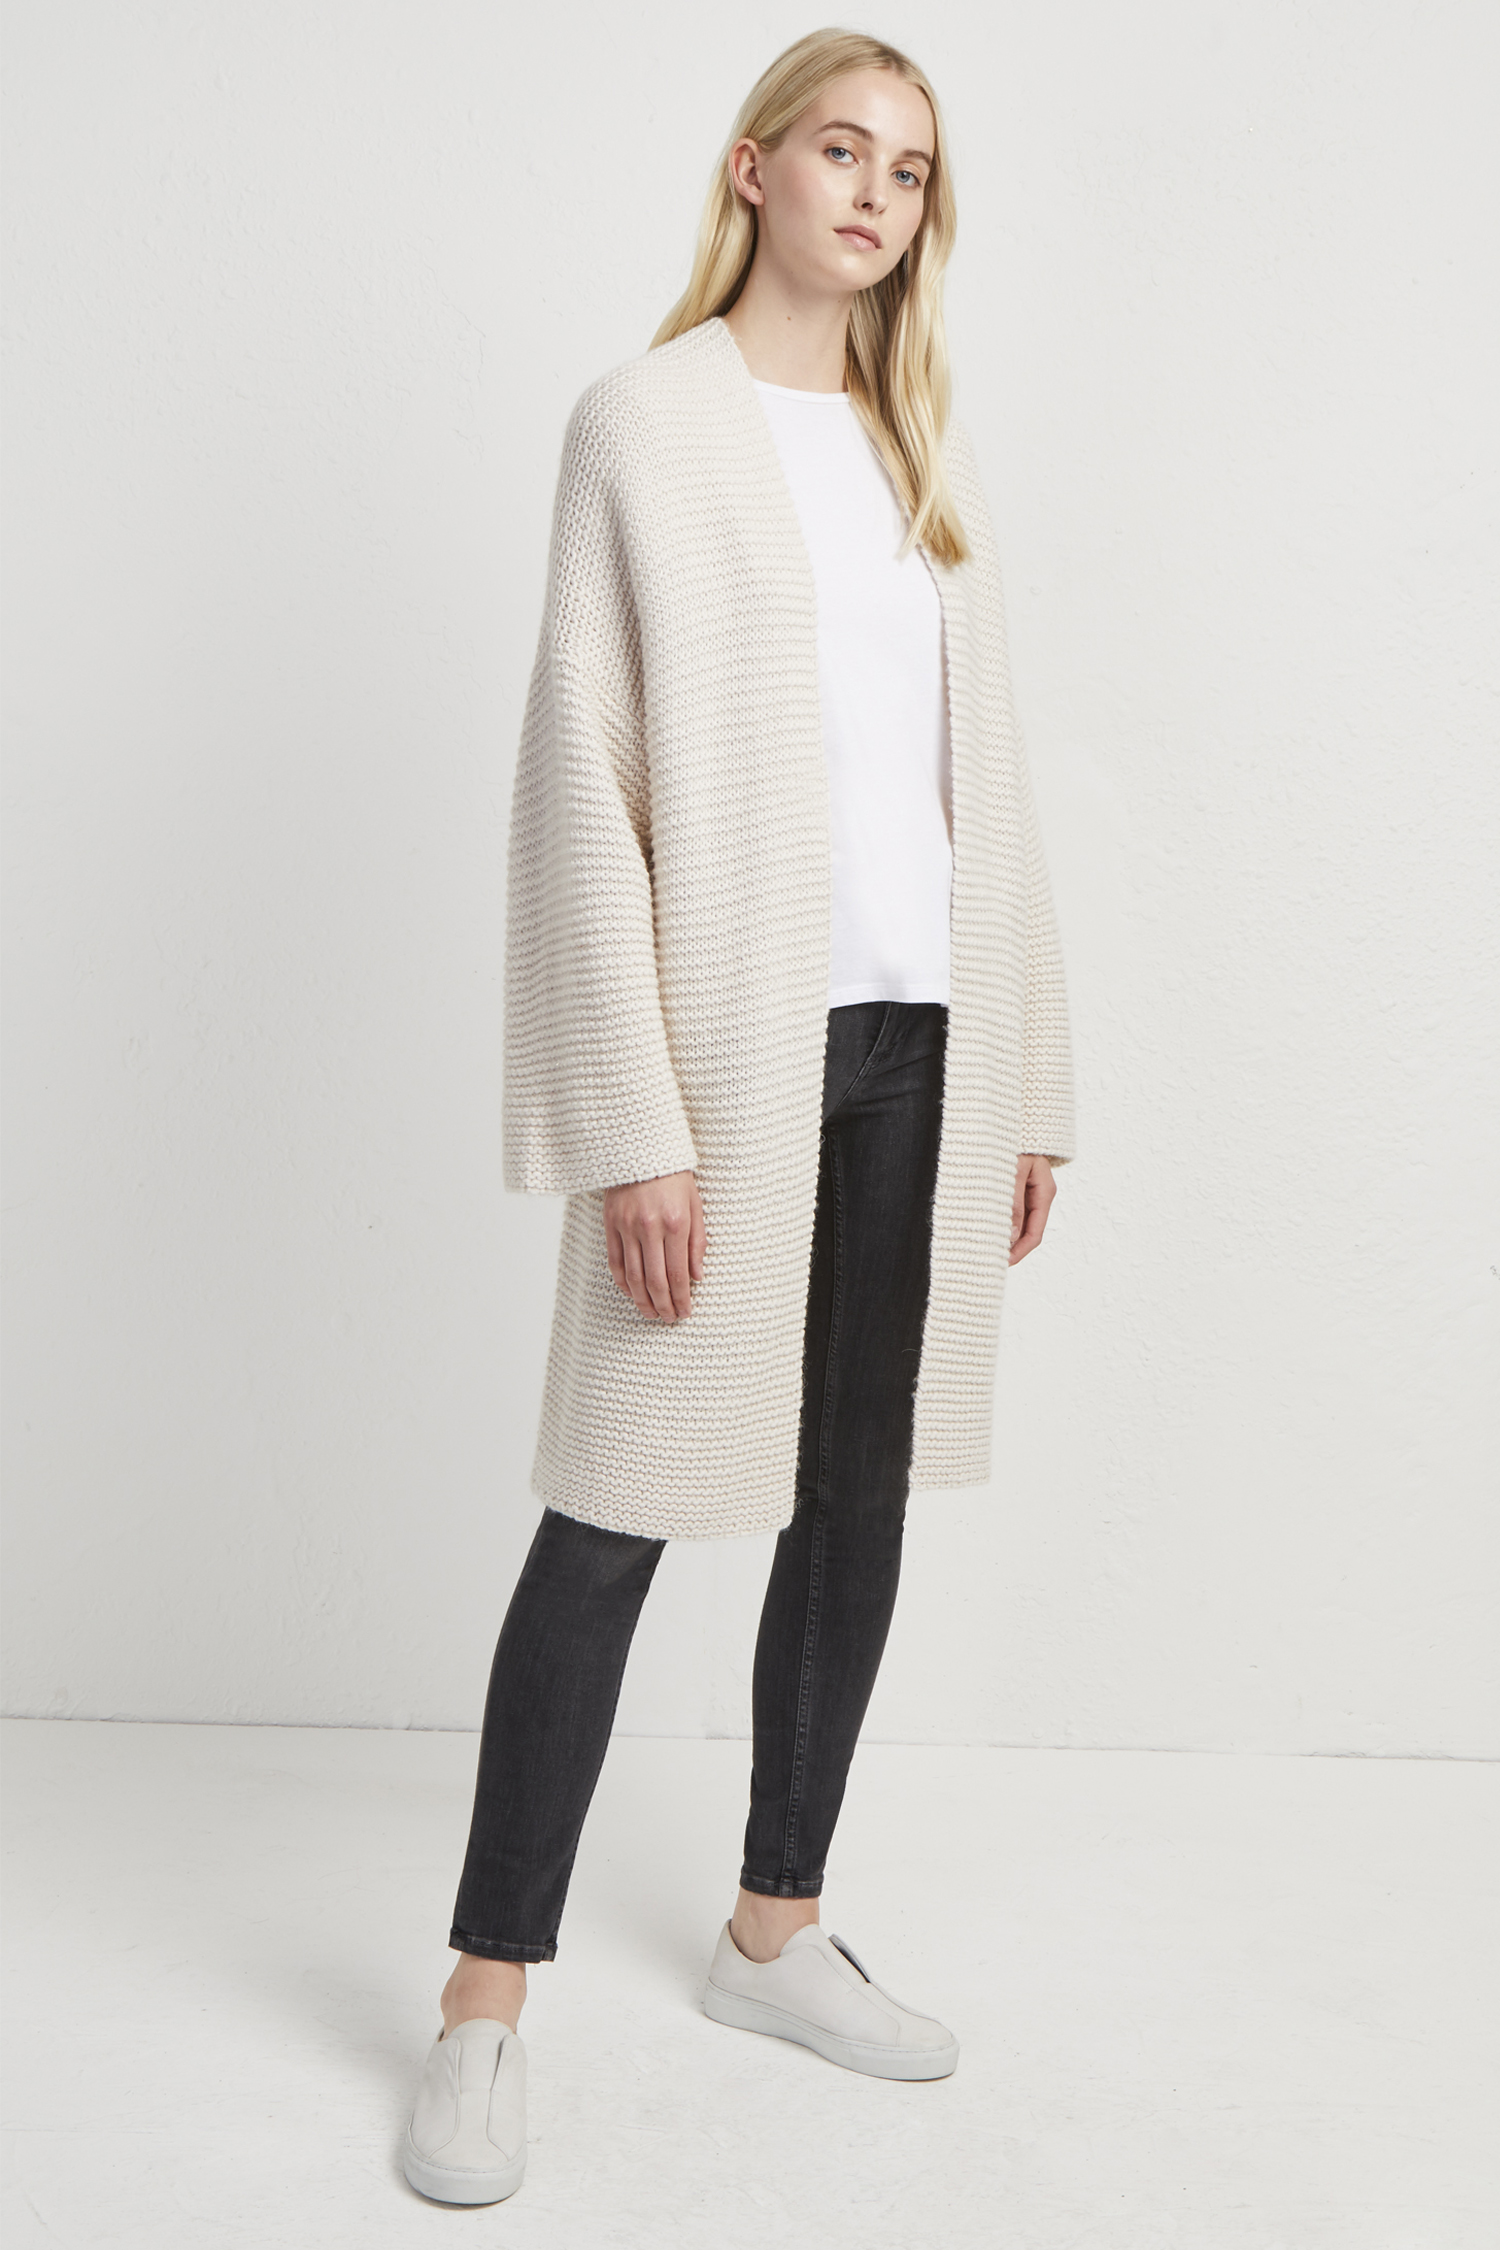 Hildred Knits Cardigan by French Connection